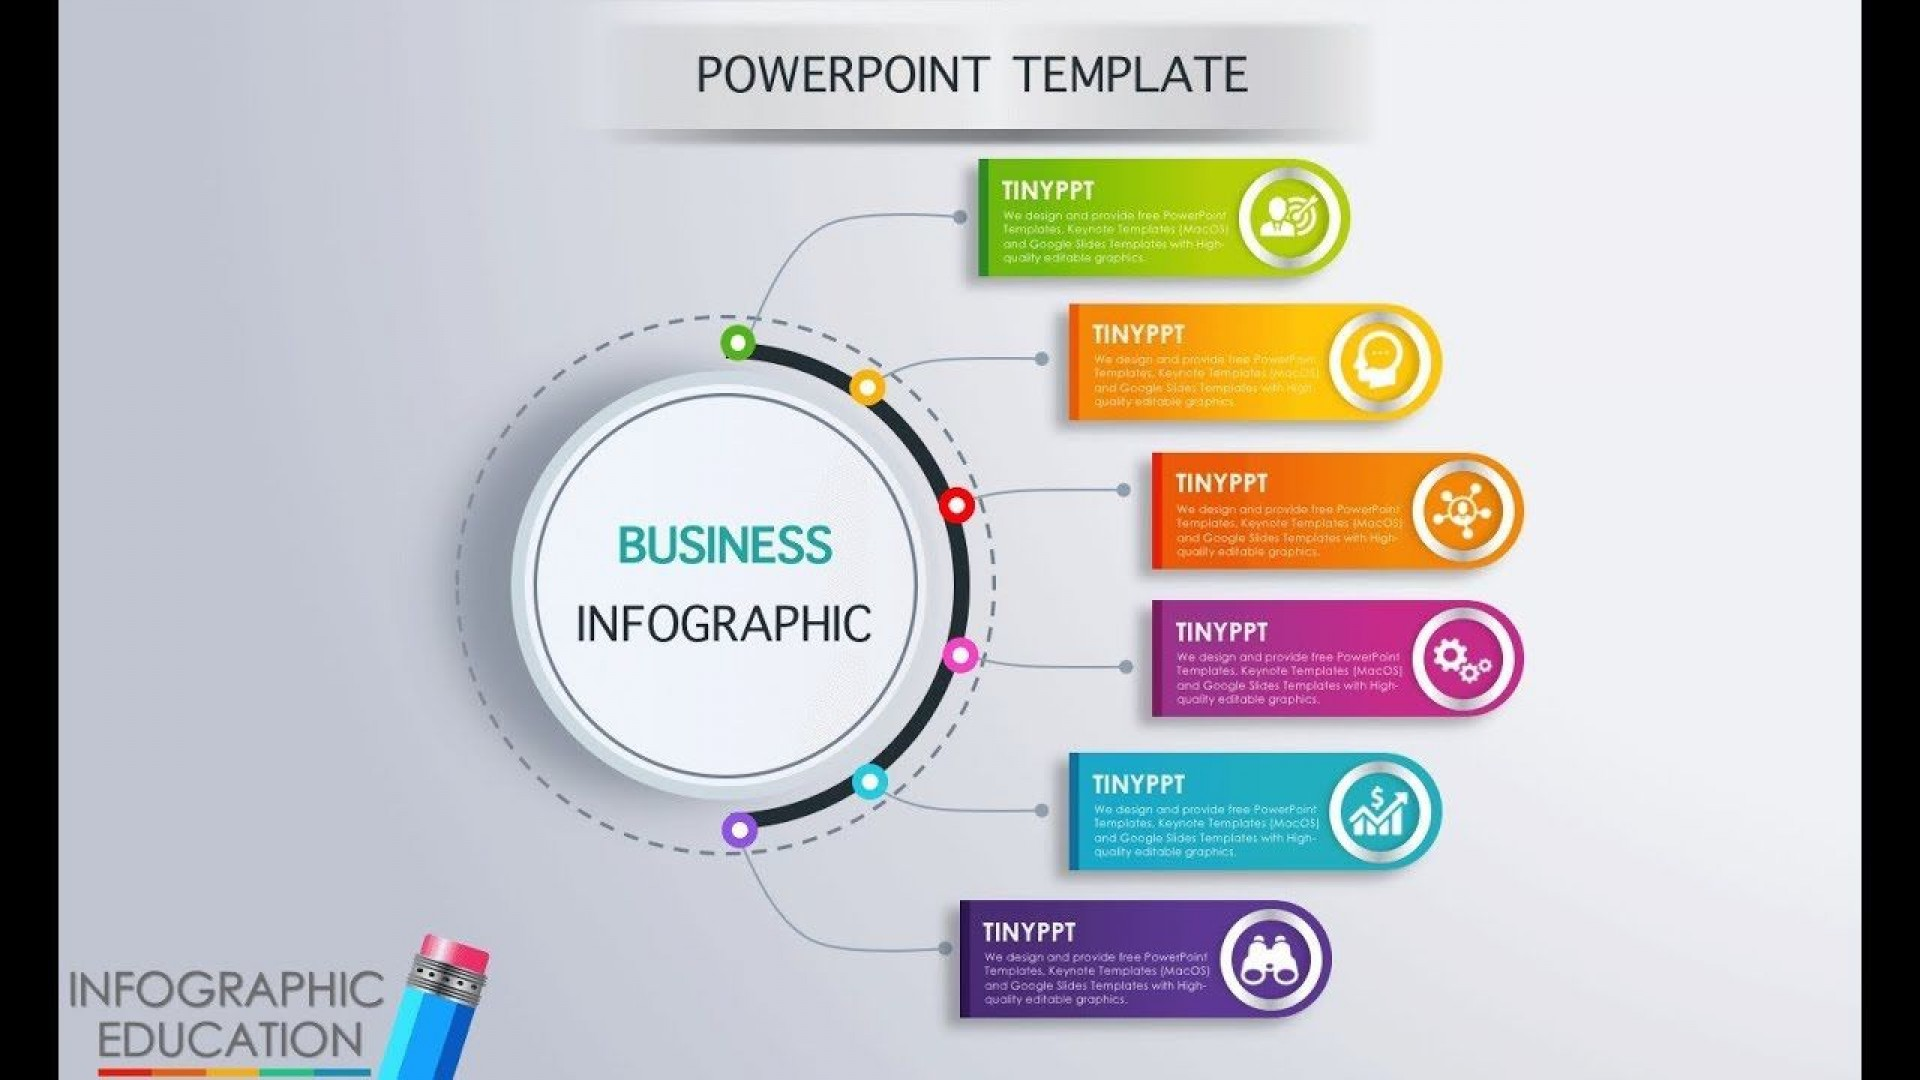 007 Excellent Free Download Powerpoint Template Inspiration  Templates Medical Theme Presentation 20181920